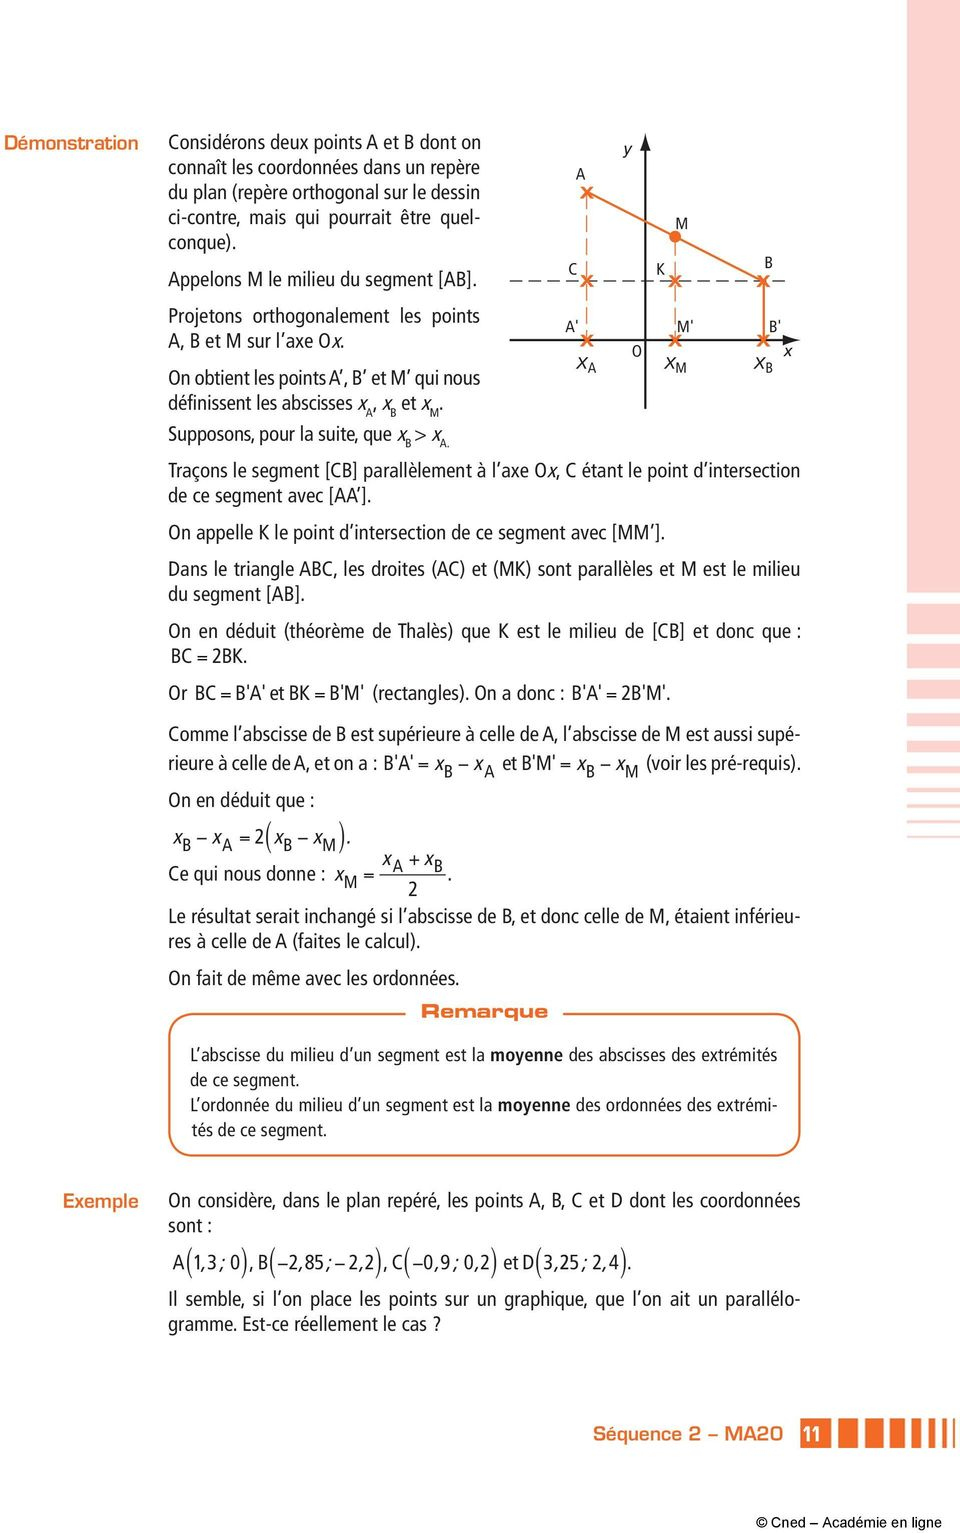 Traçons le segment [CB] parallèlement à l axe Ox, x C étant le point d intersection de ce segment avec [AA ] On appelle K le point d intersection de ce segment avec [MM ] Dans le triangle ABC, les